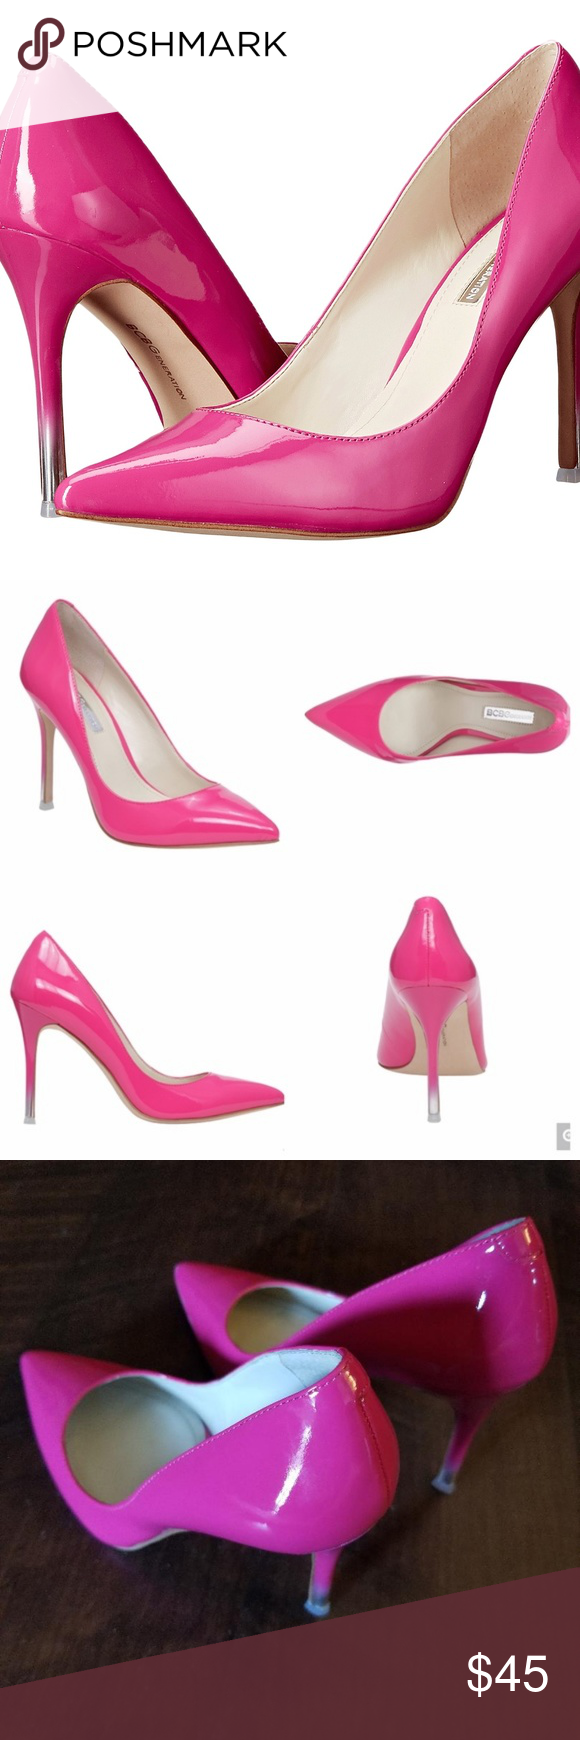 2f2f0cae6f0dc BCBG Hot Pink Pumps BCBGeneration Hot Pink Pumps Style: BG - Treasure  Color: Flash Pink Material: Patent Size: 5.5 M Great Condition Ready to  ship out in ...